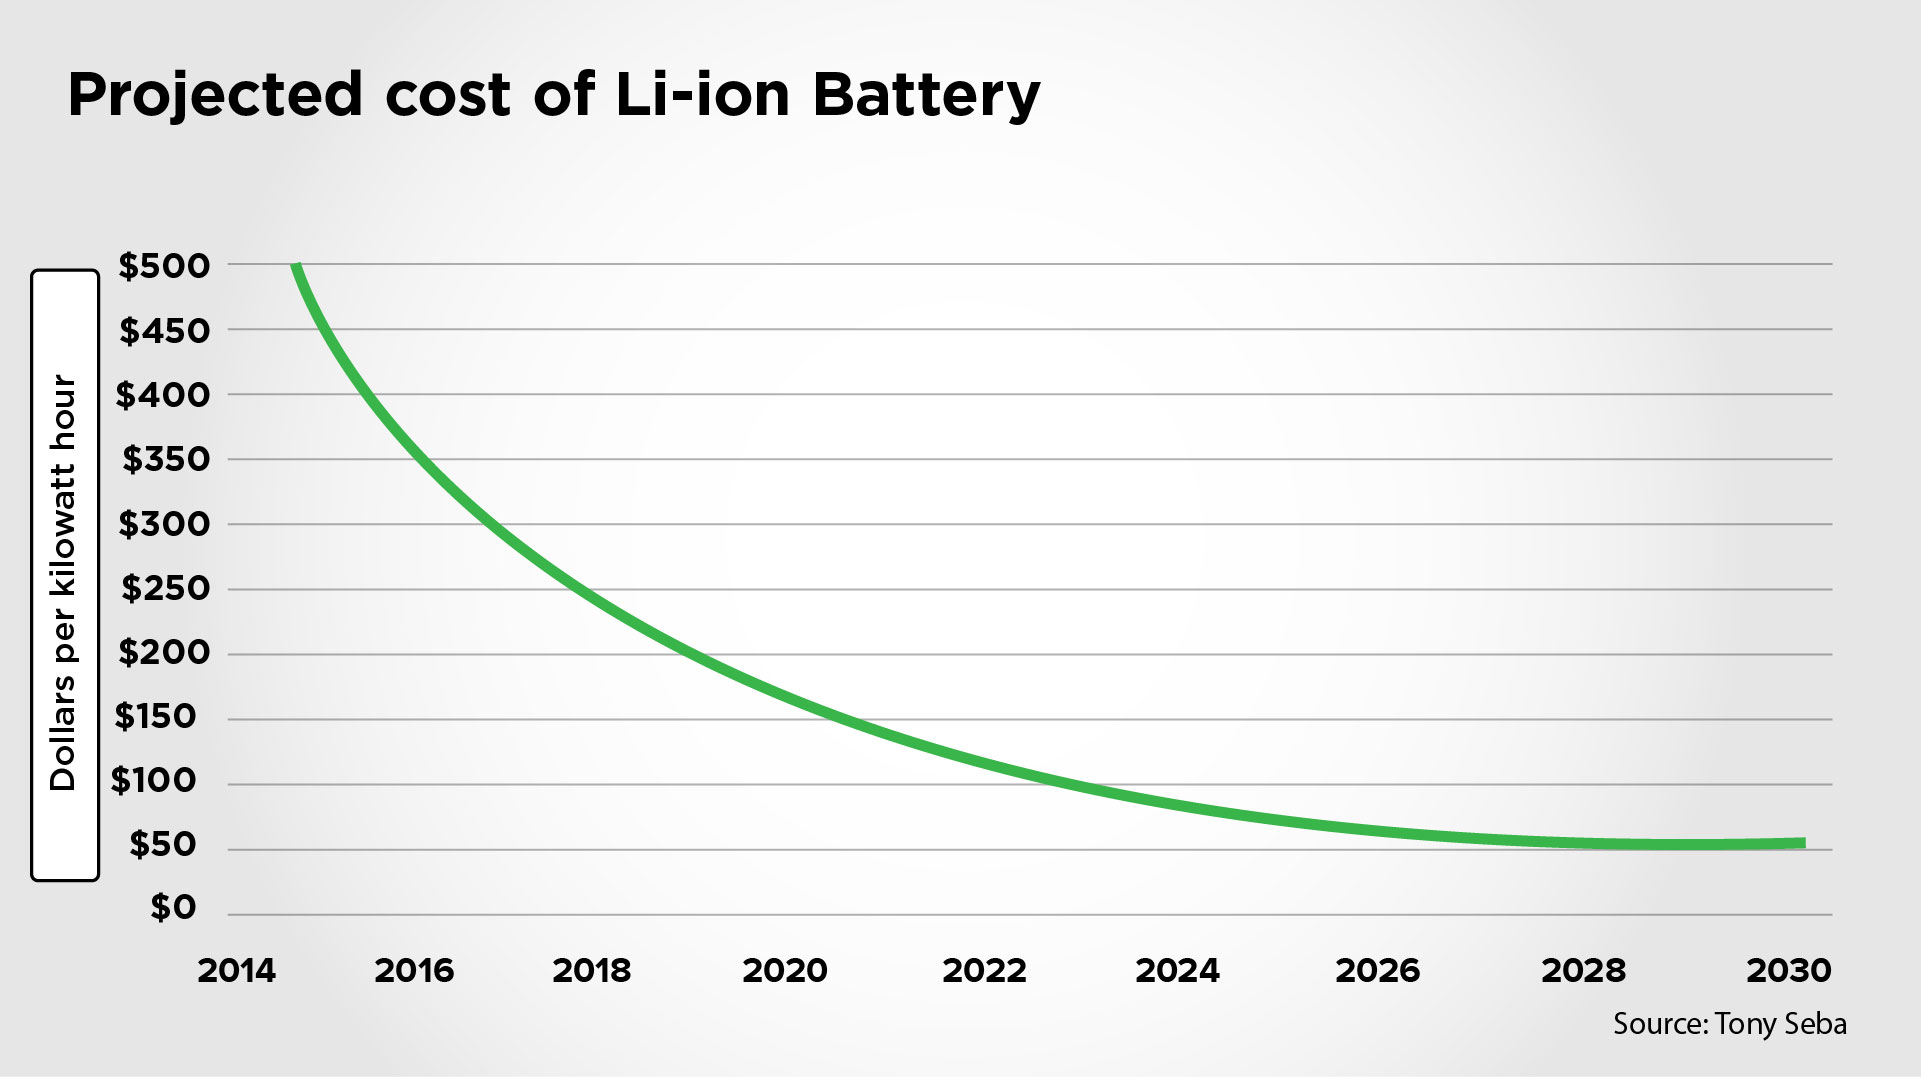 Projected Cost of Li-ion Battery